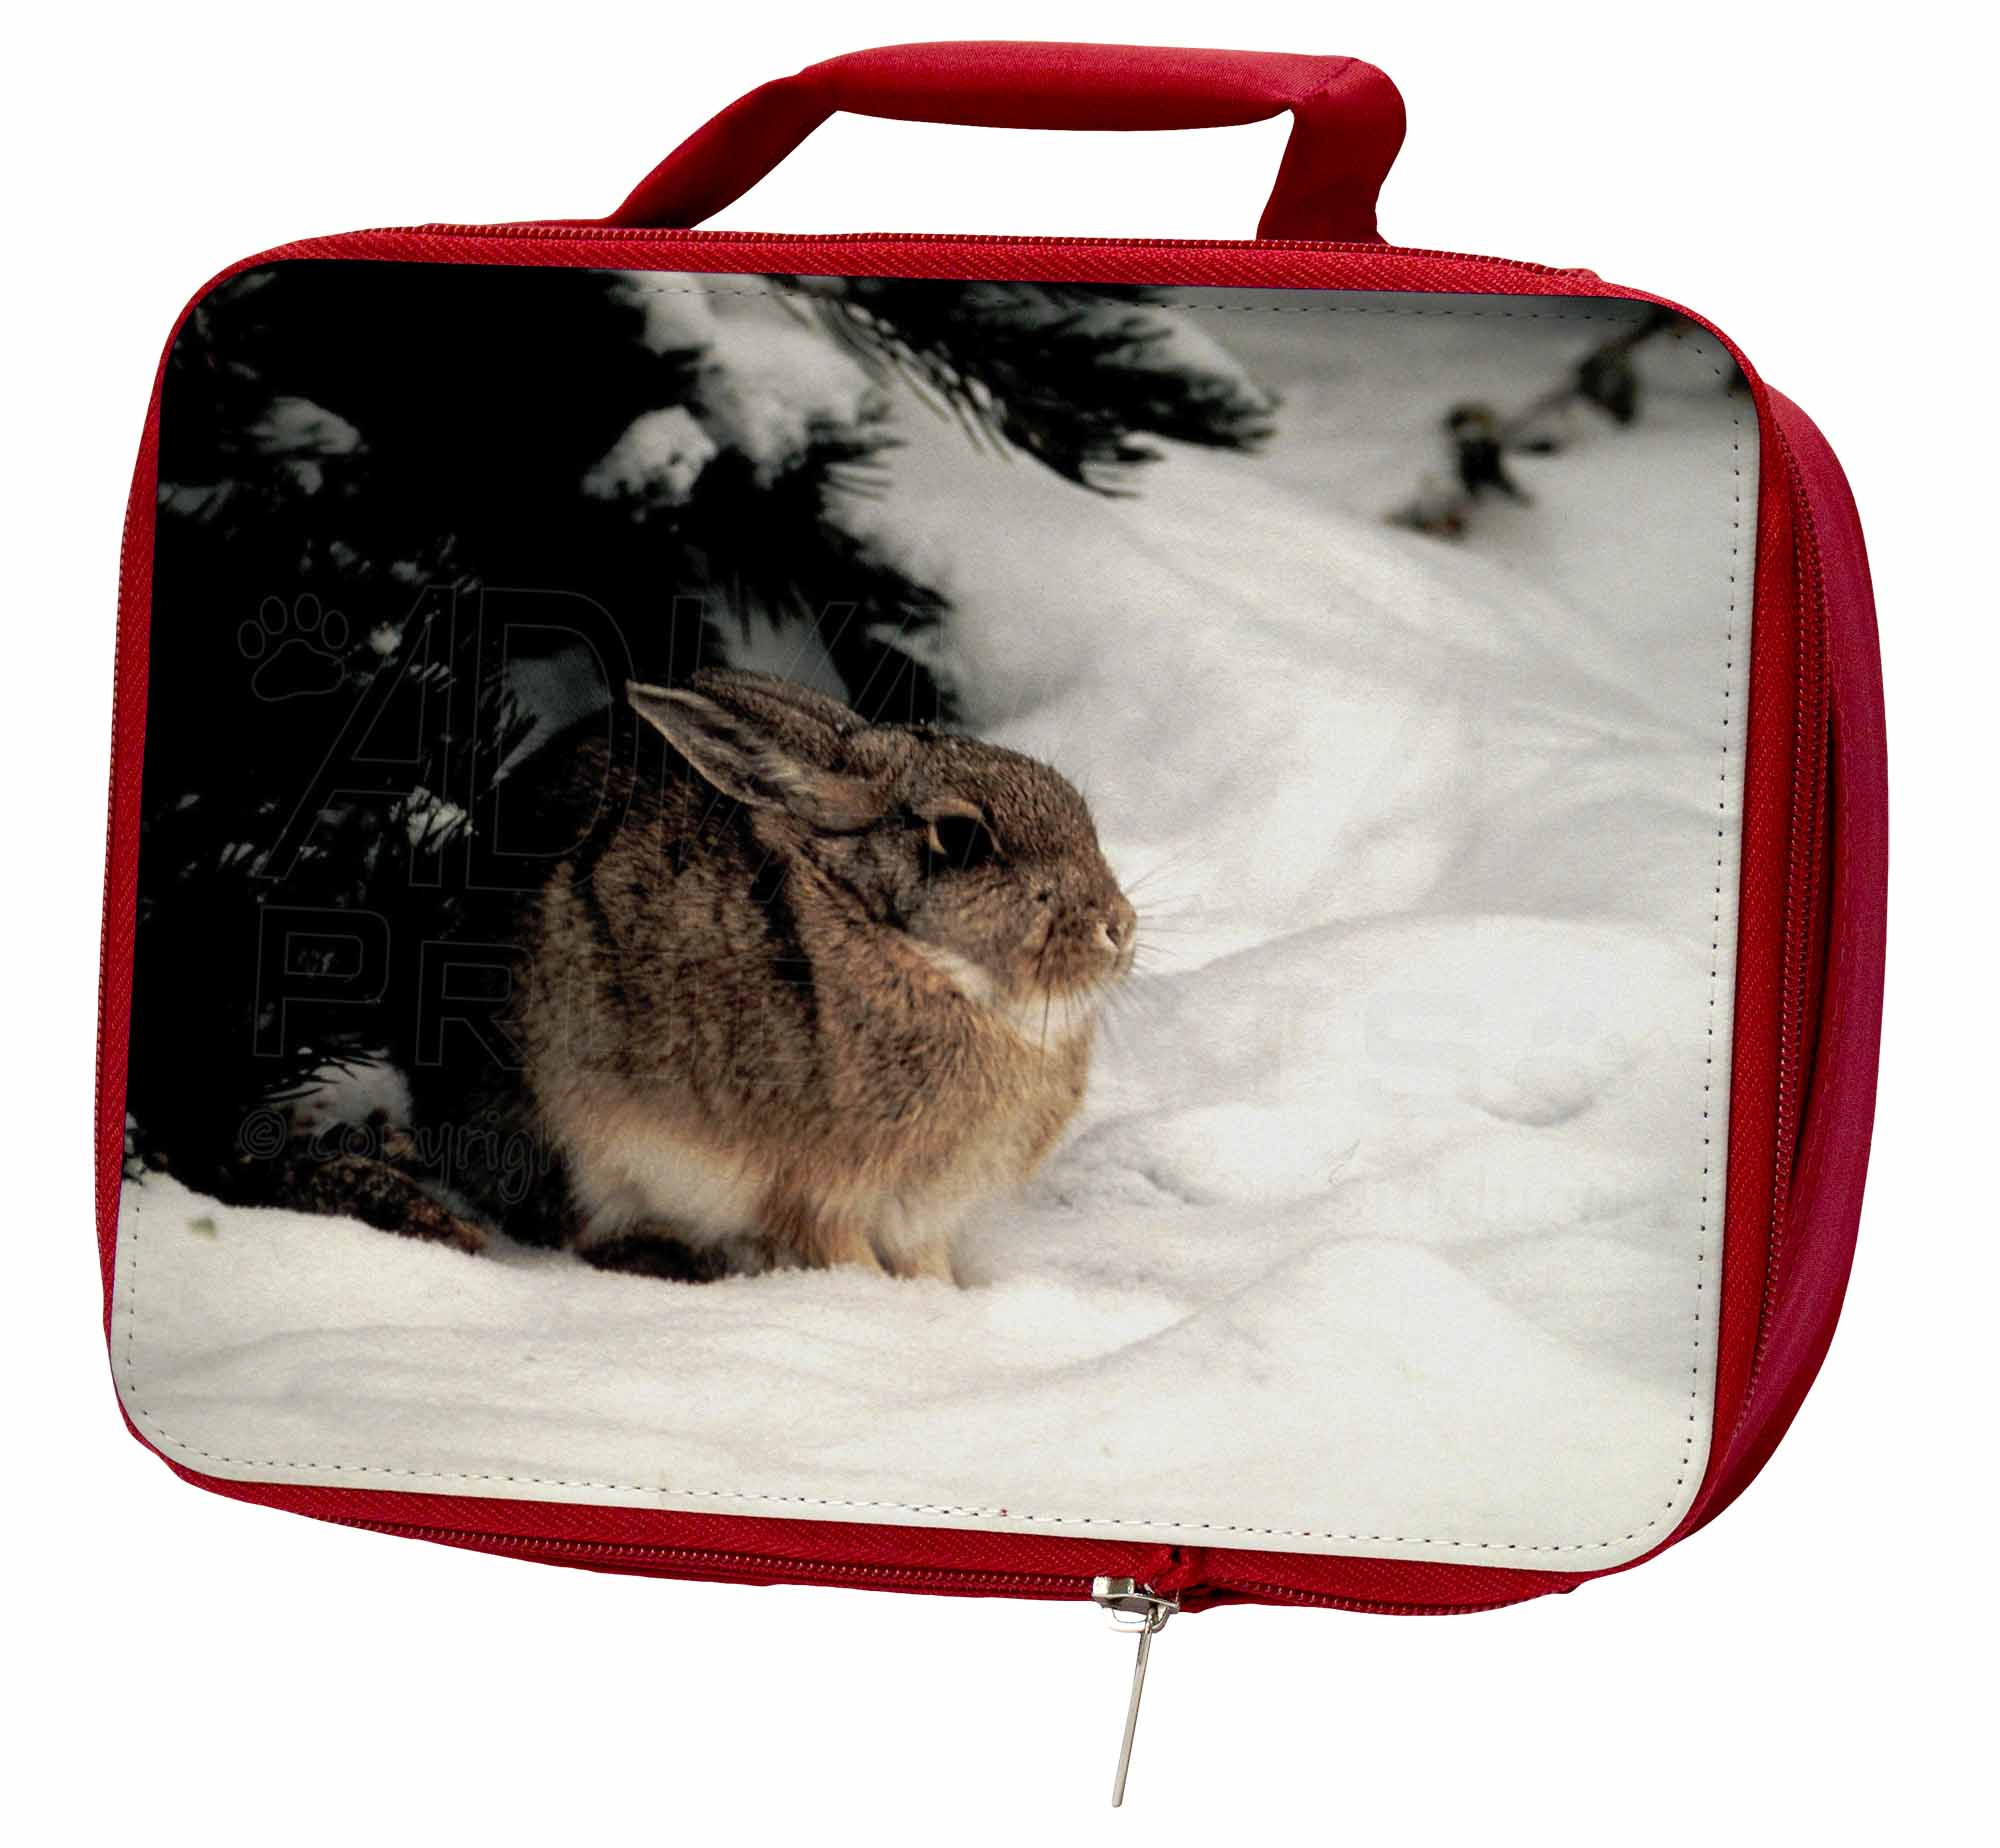 Rabbit in AR-4LBR Snow Insulated Red School Lunch Box/Picnic Bag, AR-4LBR in e0a4ec